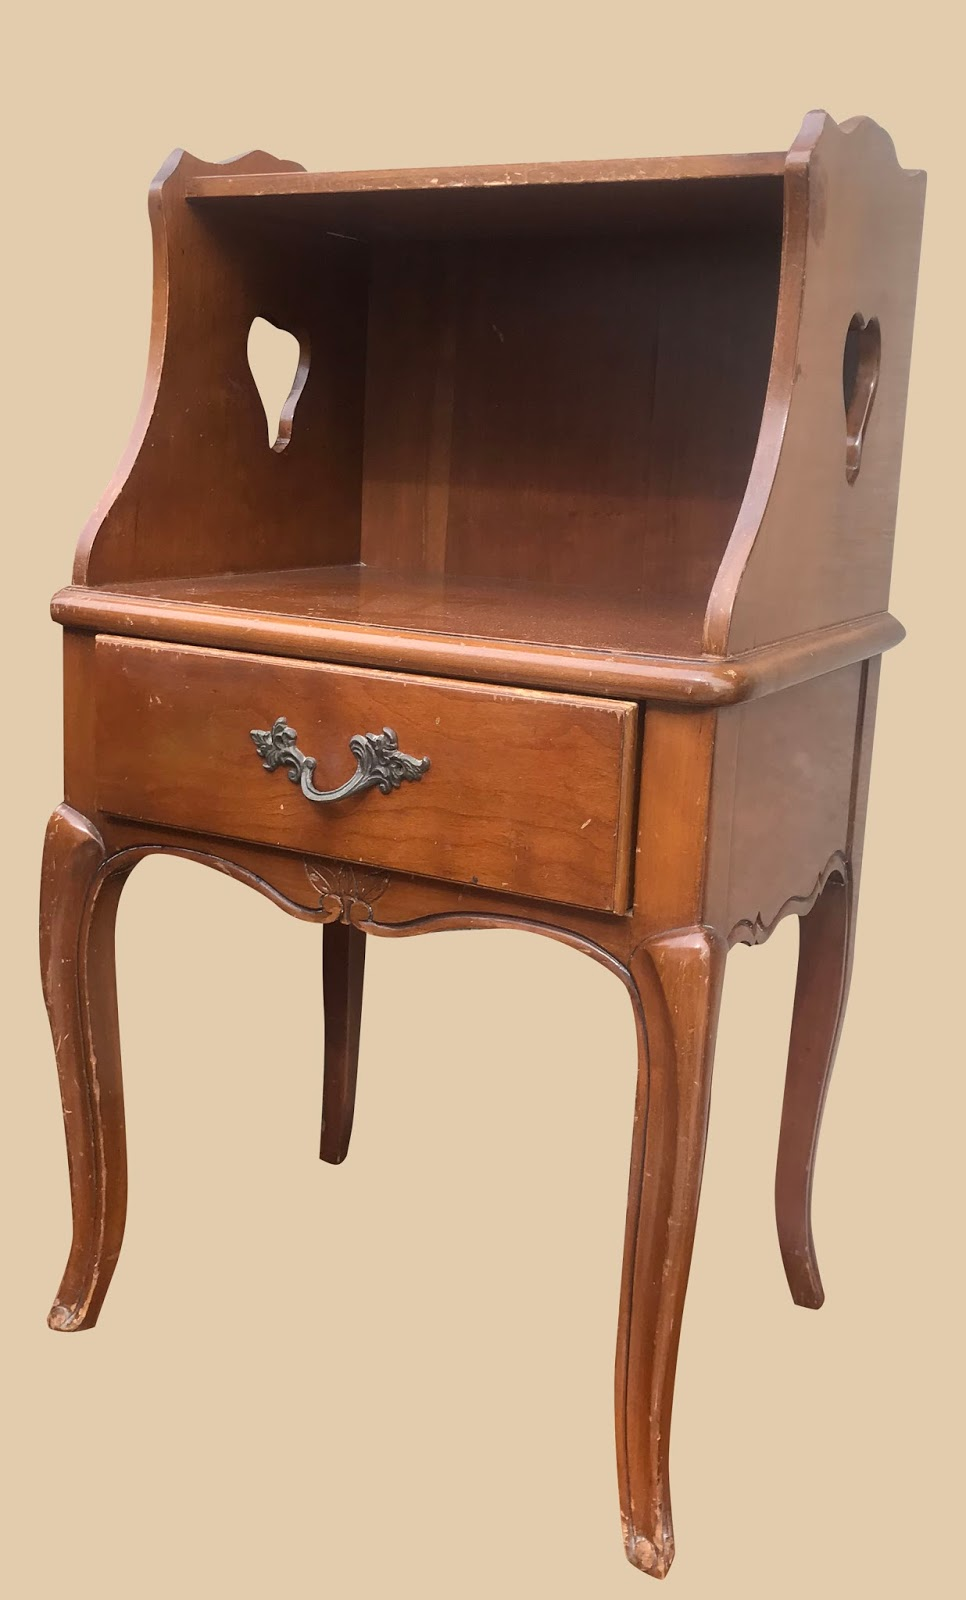 Uhuru furniture collectibles french provincial walnut nightstand 40 sold - Growing french walnuts for a profit ...